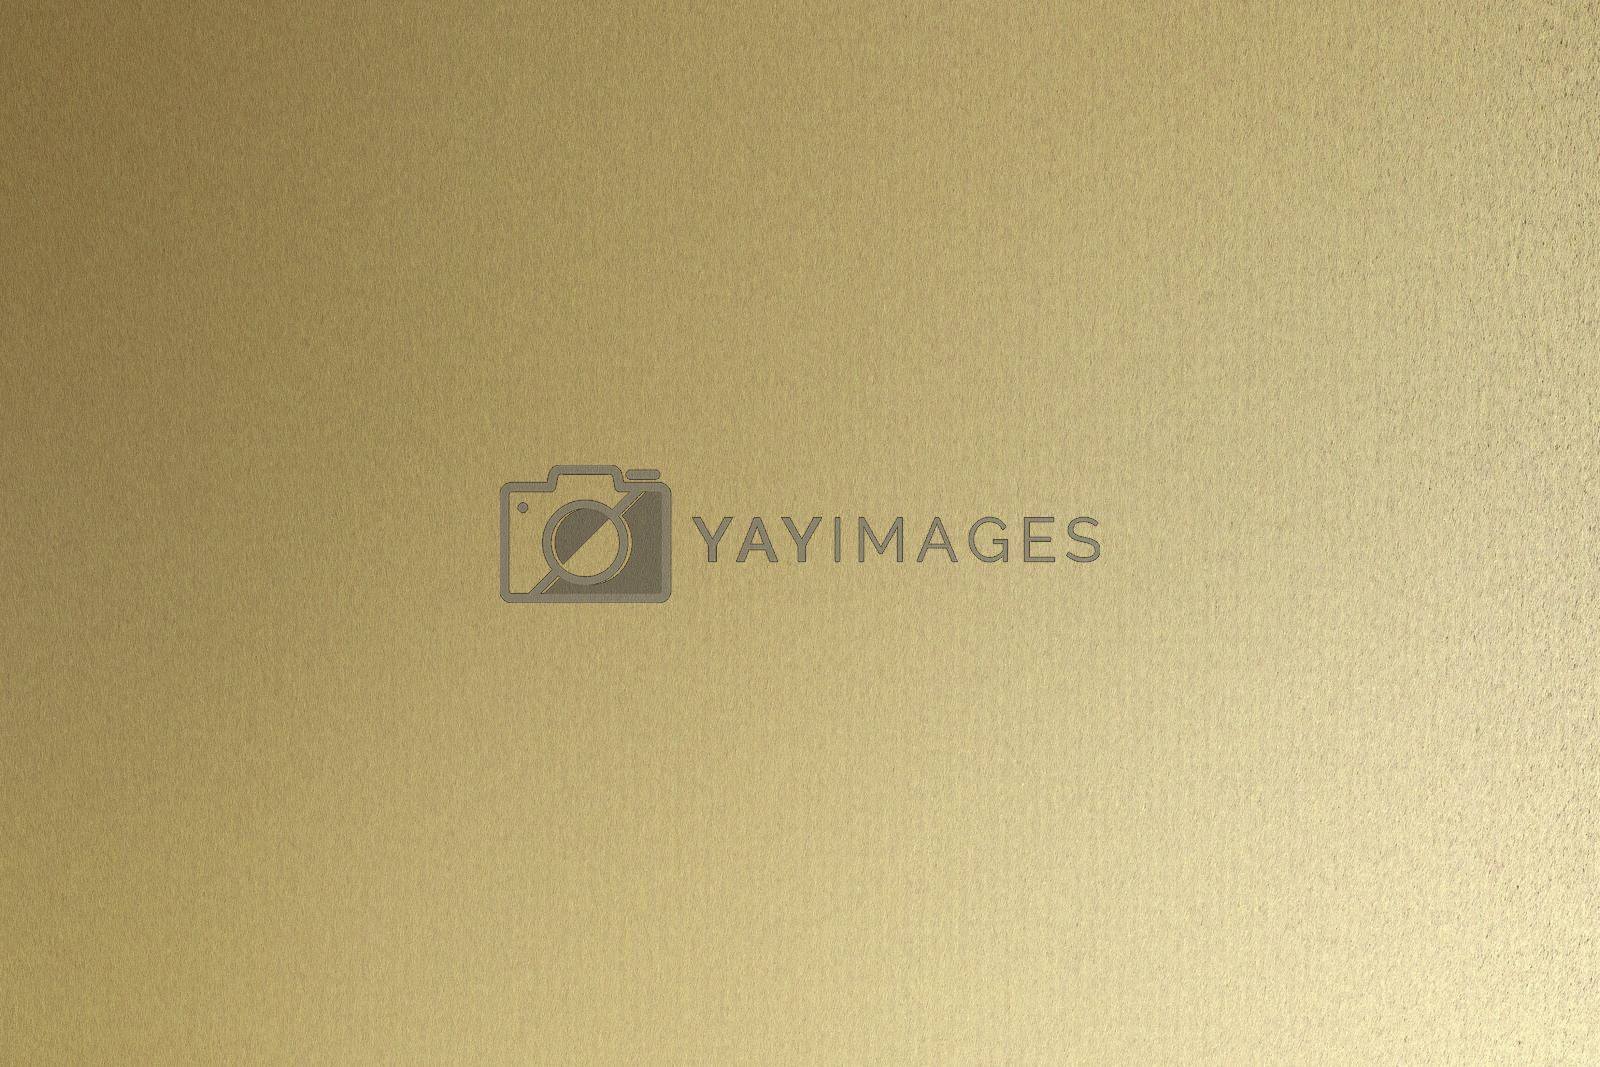 Royalty free image of Rough gold metallic sheet board, abstract texture background by mouu007